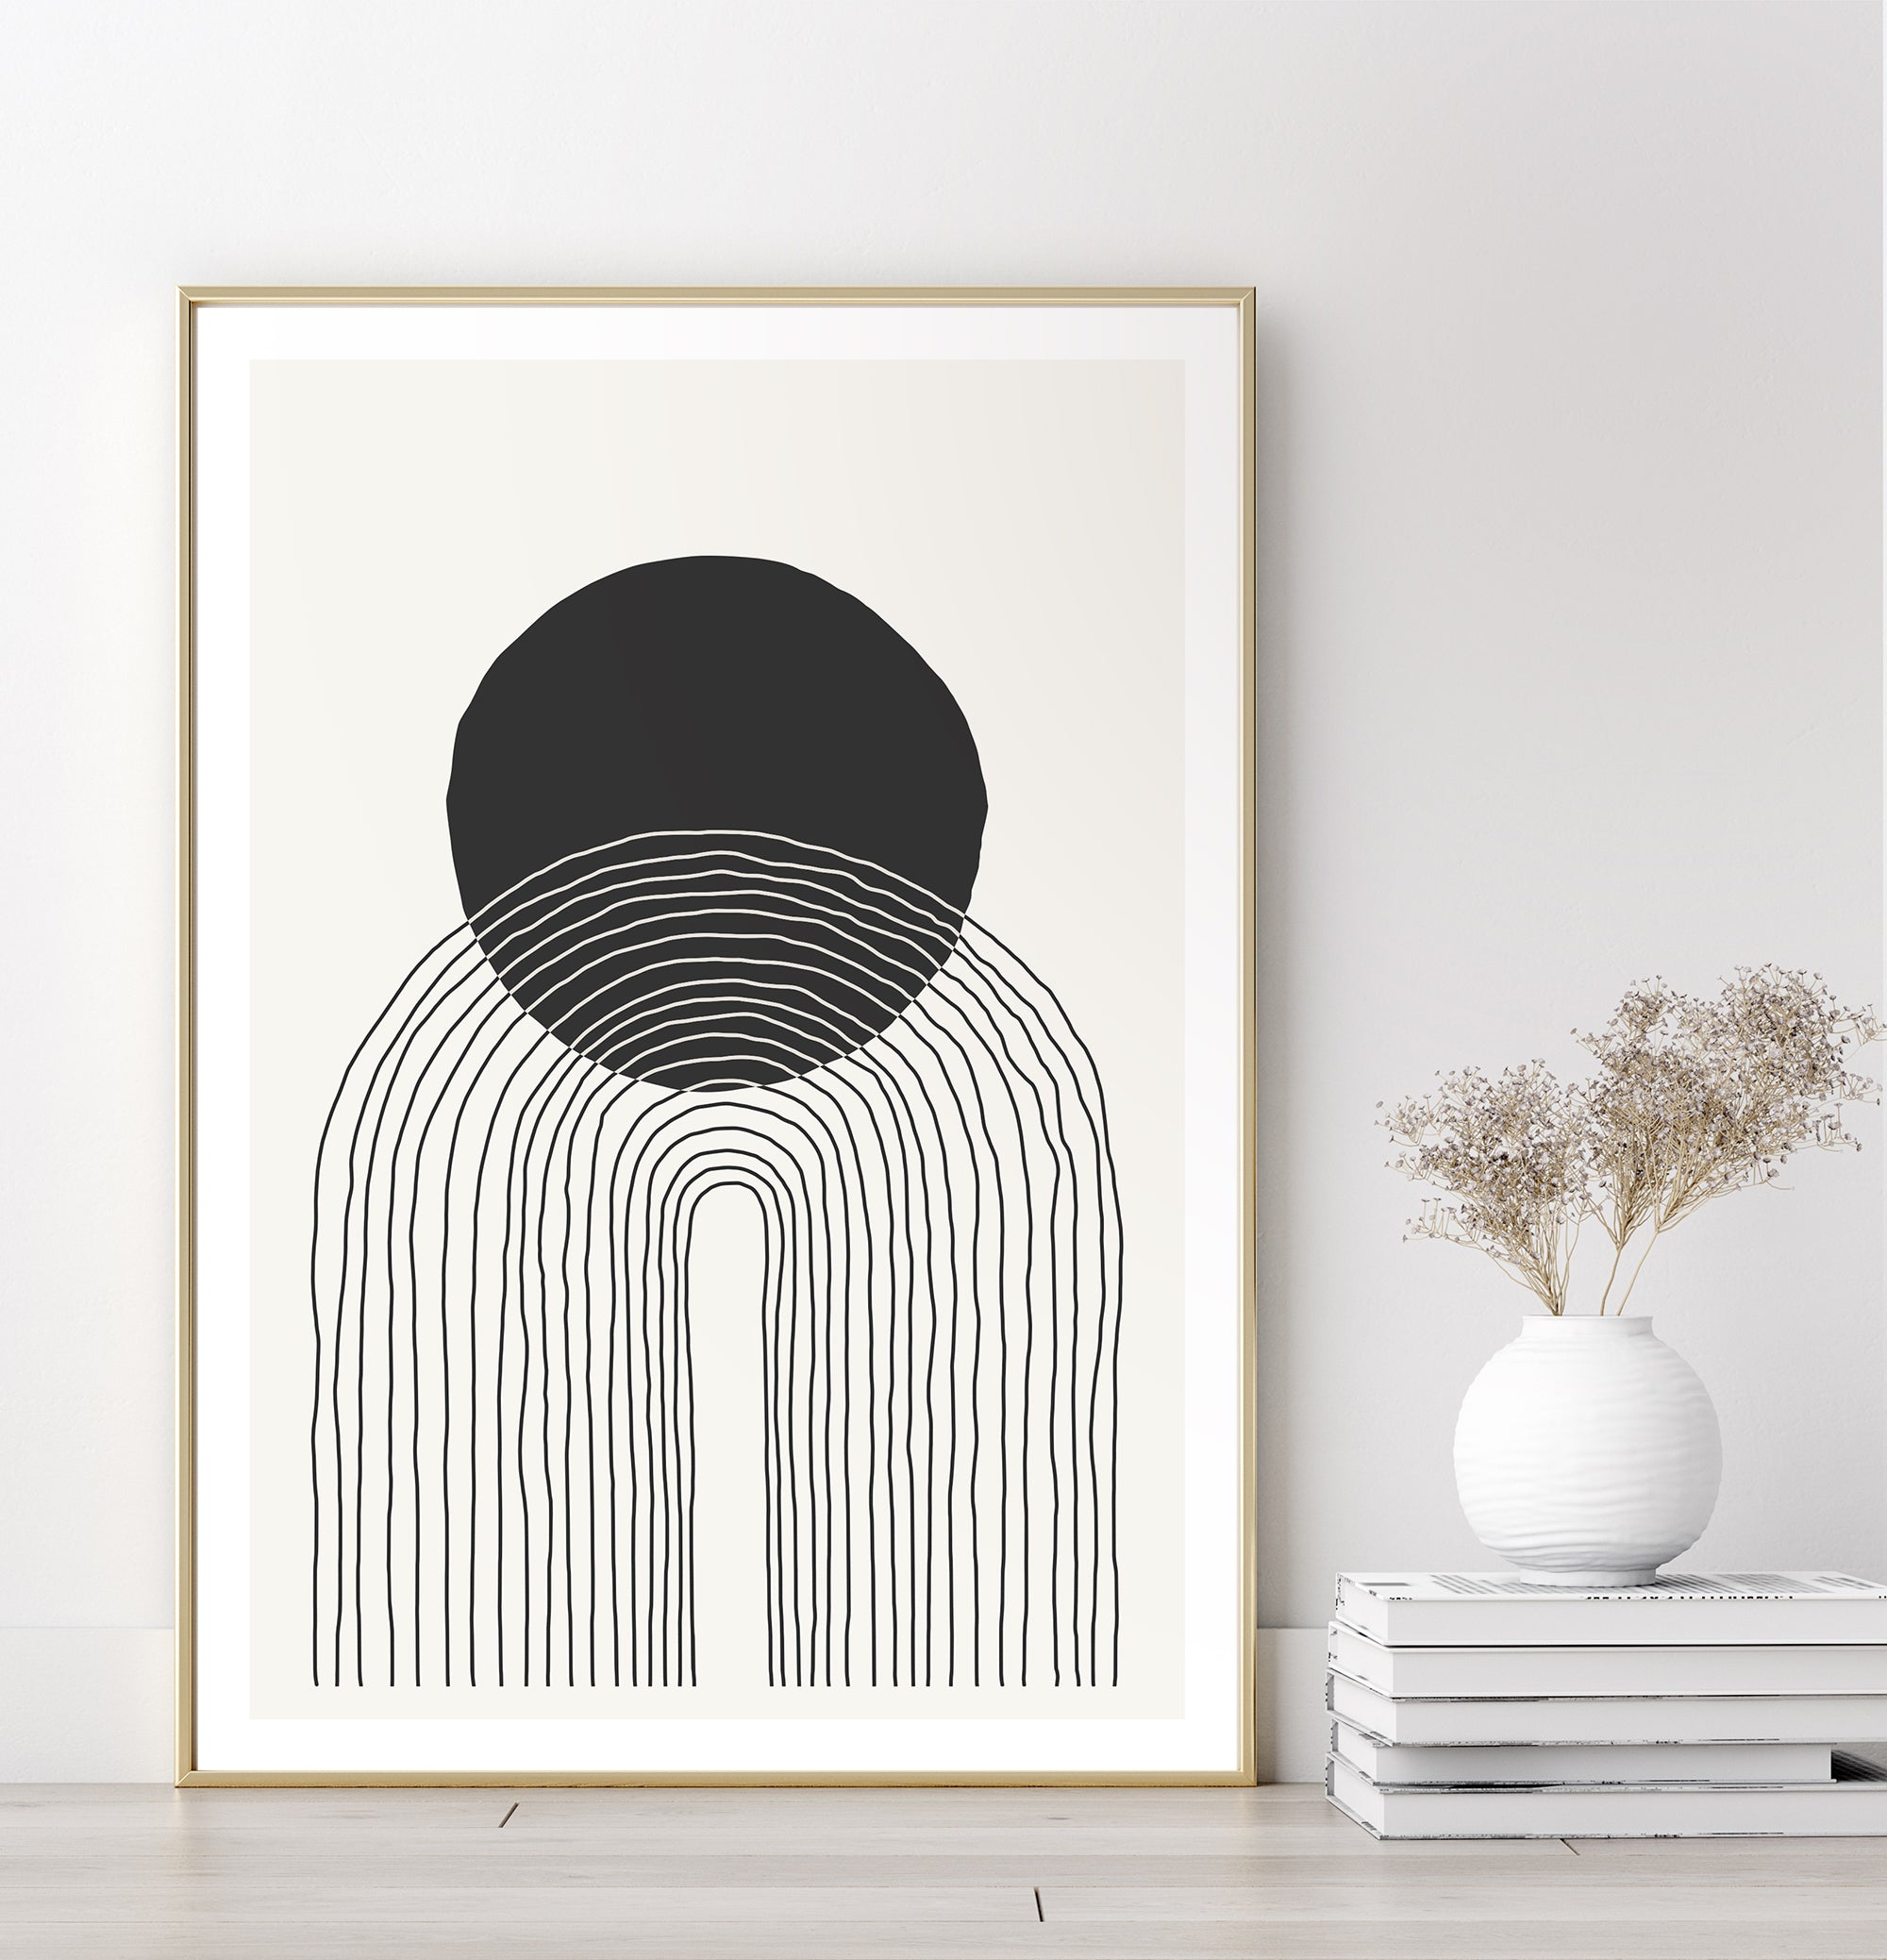 Minimalist line art poster of black and white graphic shapes